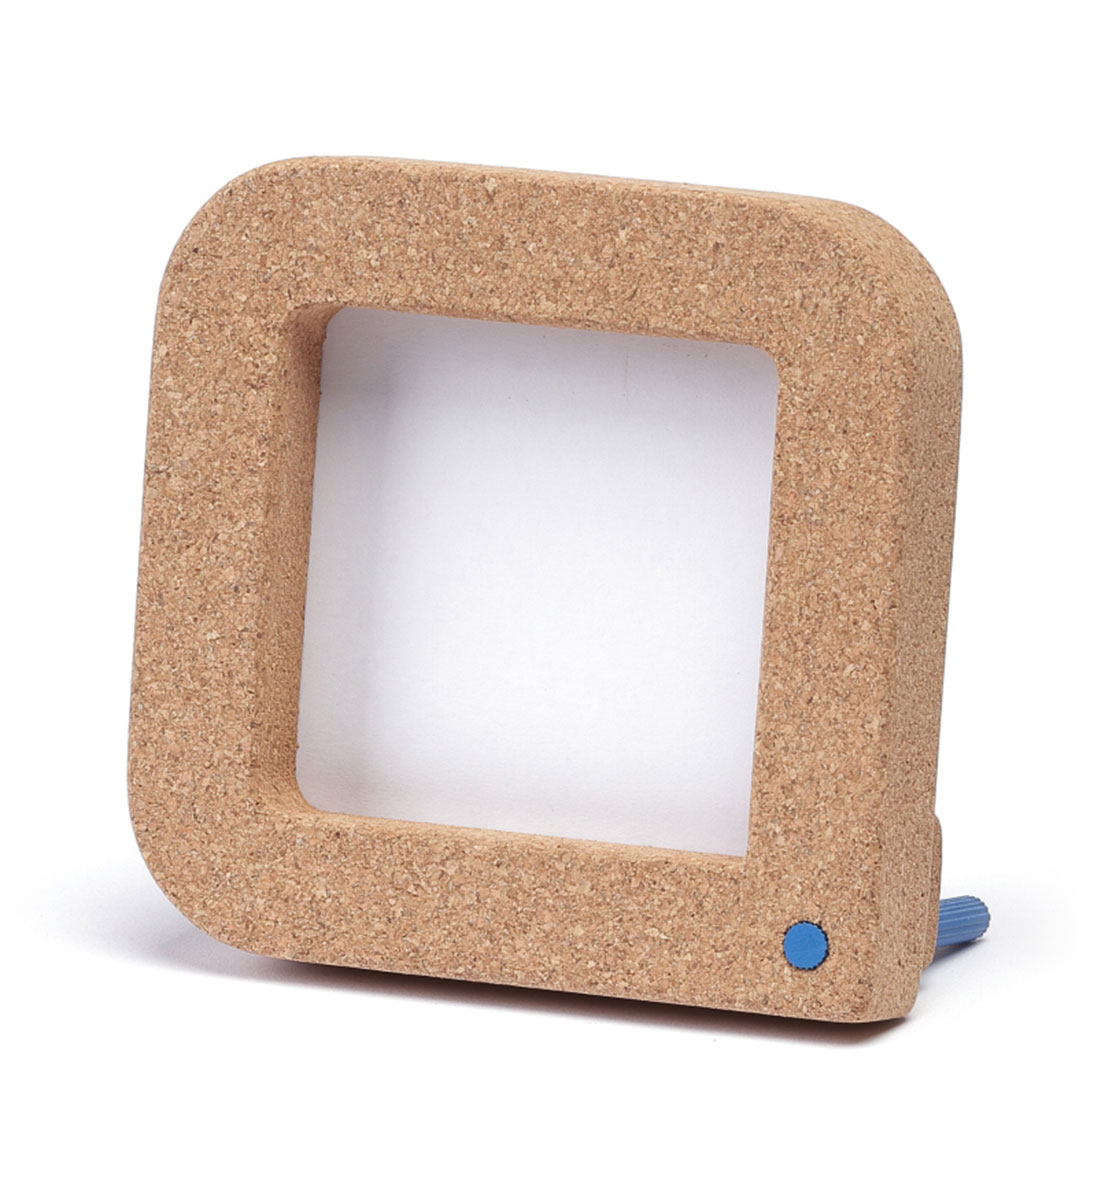 BOARD PACK: 2 SIT\'ABIT stools + 3 photo frames + extras | PLY&co.